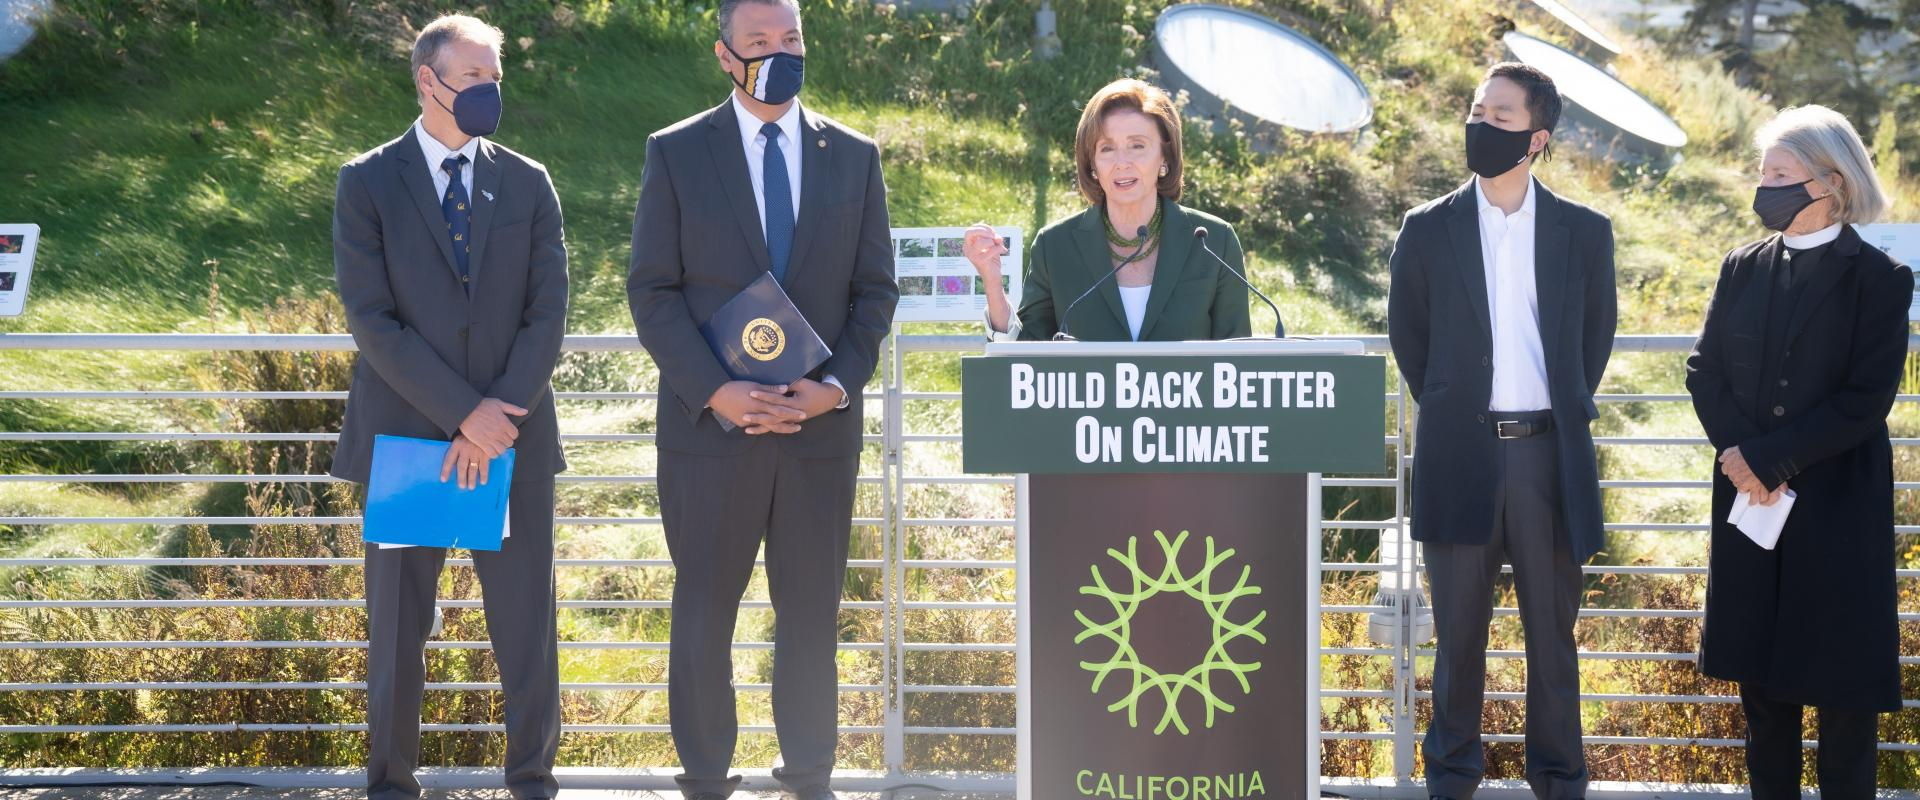 Congresswoman Nancy Pelosi joined Senator Alex Padilla and local climate leaders on the California Academy of Sciences Living Roof to discuss the critical provisions of the Build Back Better Act that tackle the climate crisis, create jobs, fight environme